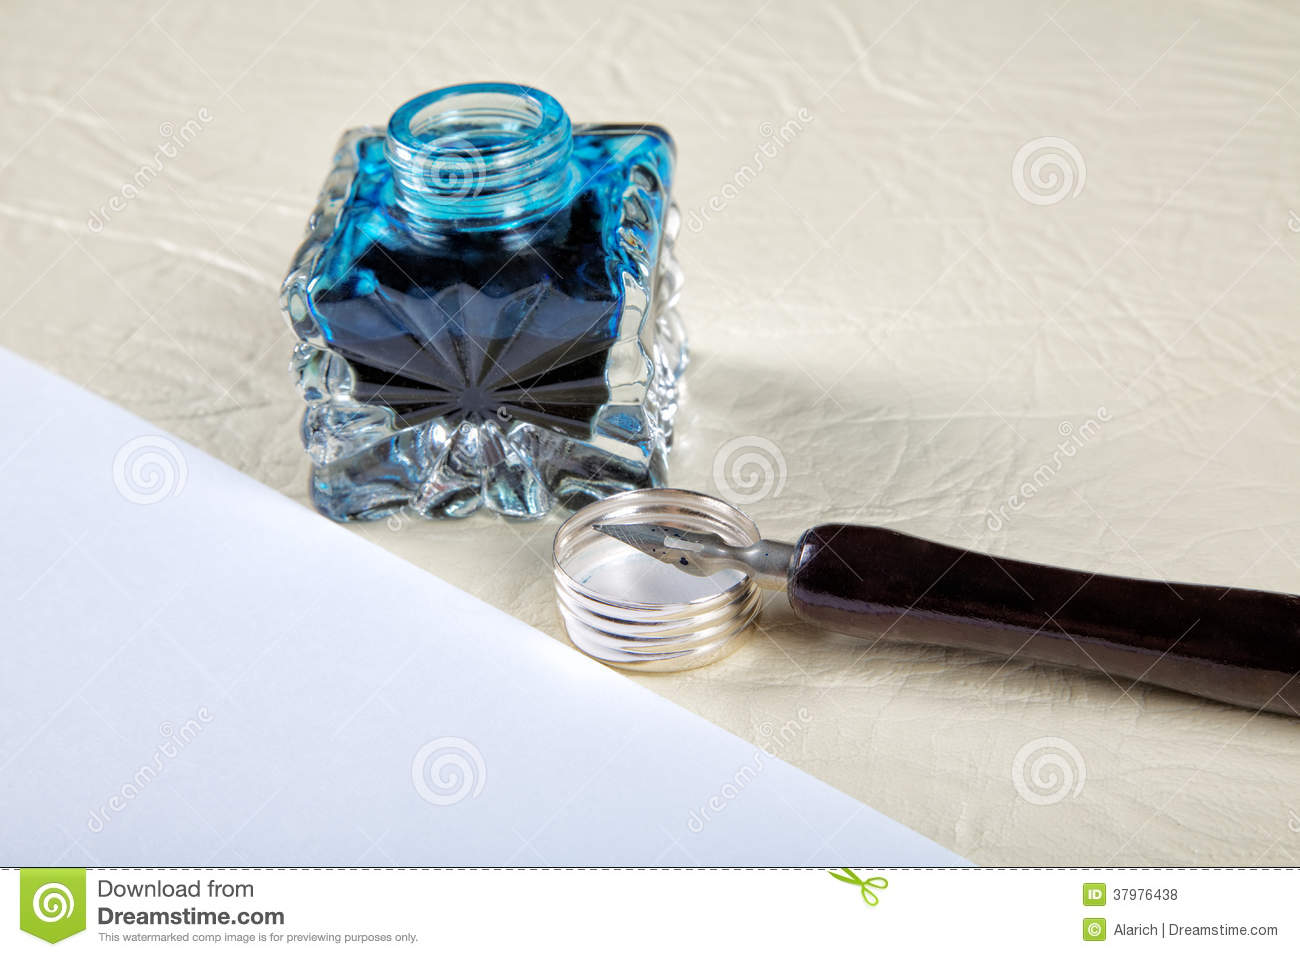 Ink Pot And Quill With Sheets Of Paper Stock Photo - Image ... Quill And Ink Pot Image